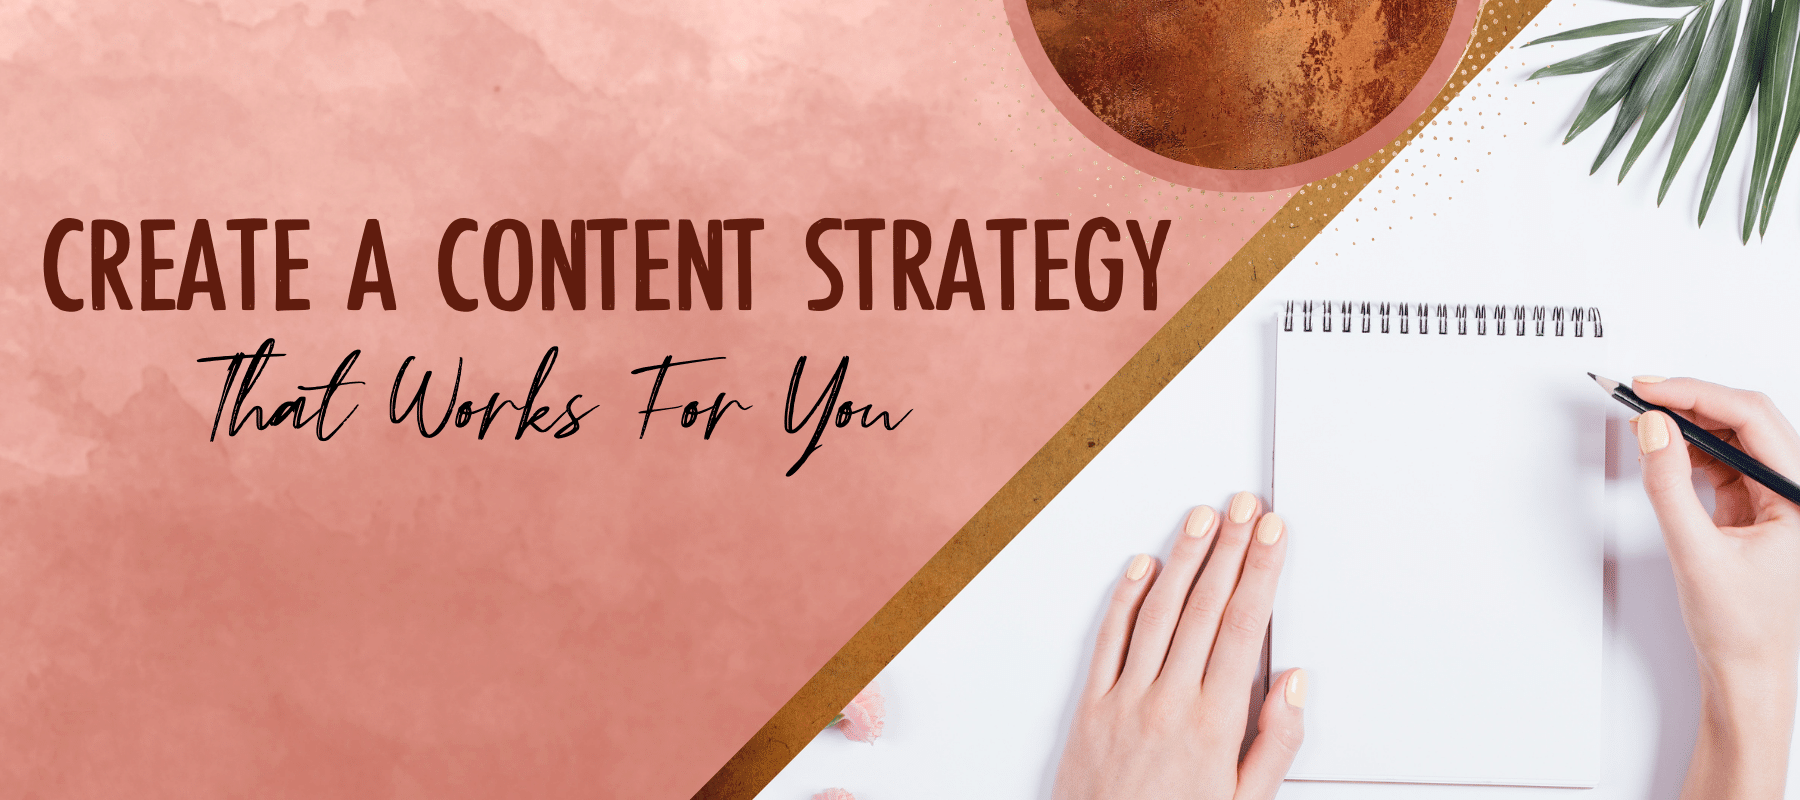 How to Create a Content Strategy that Works for You